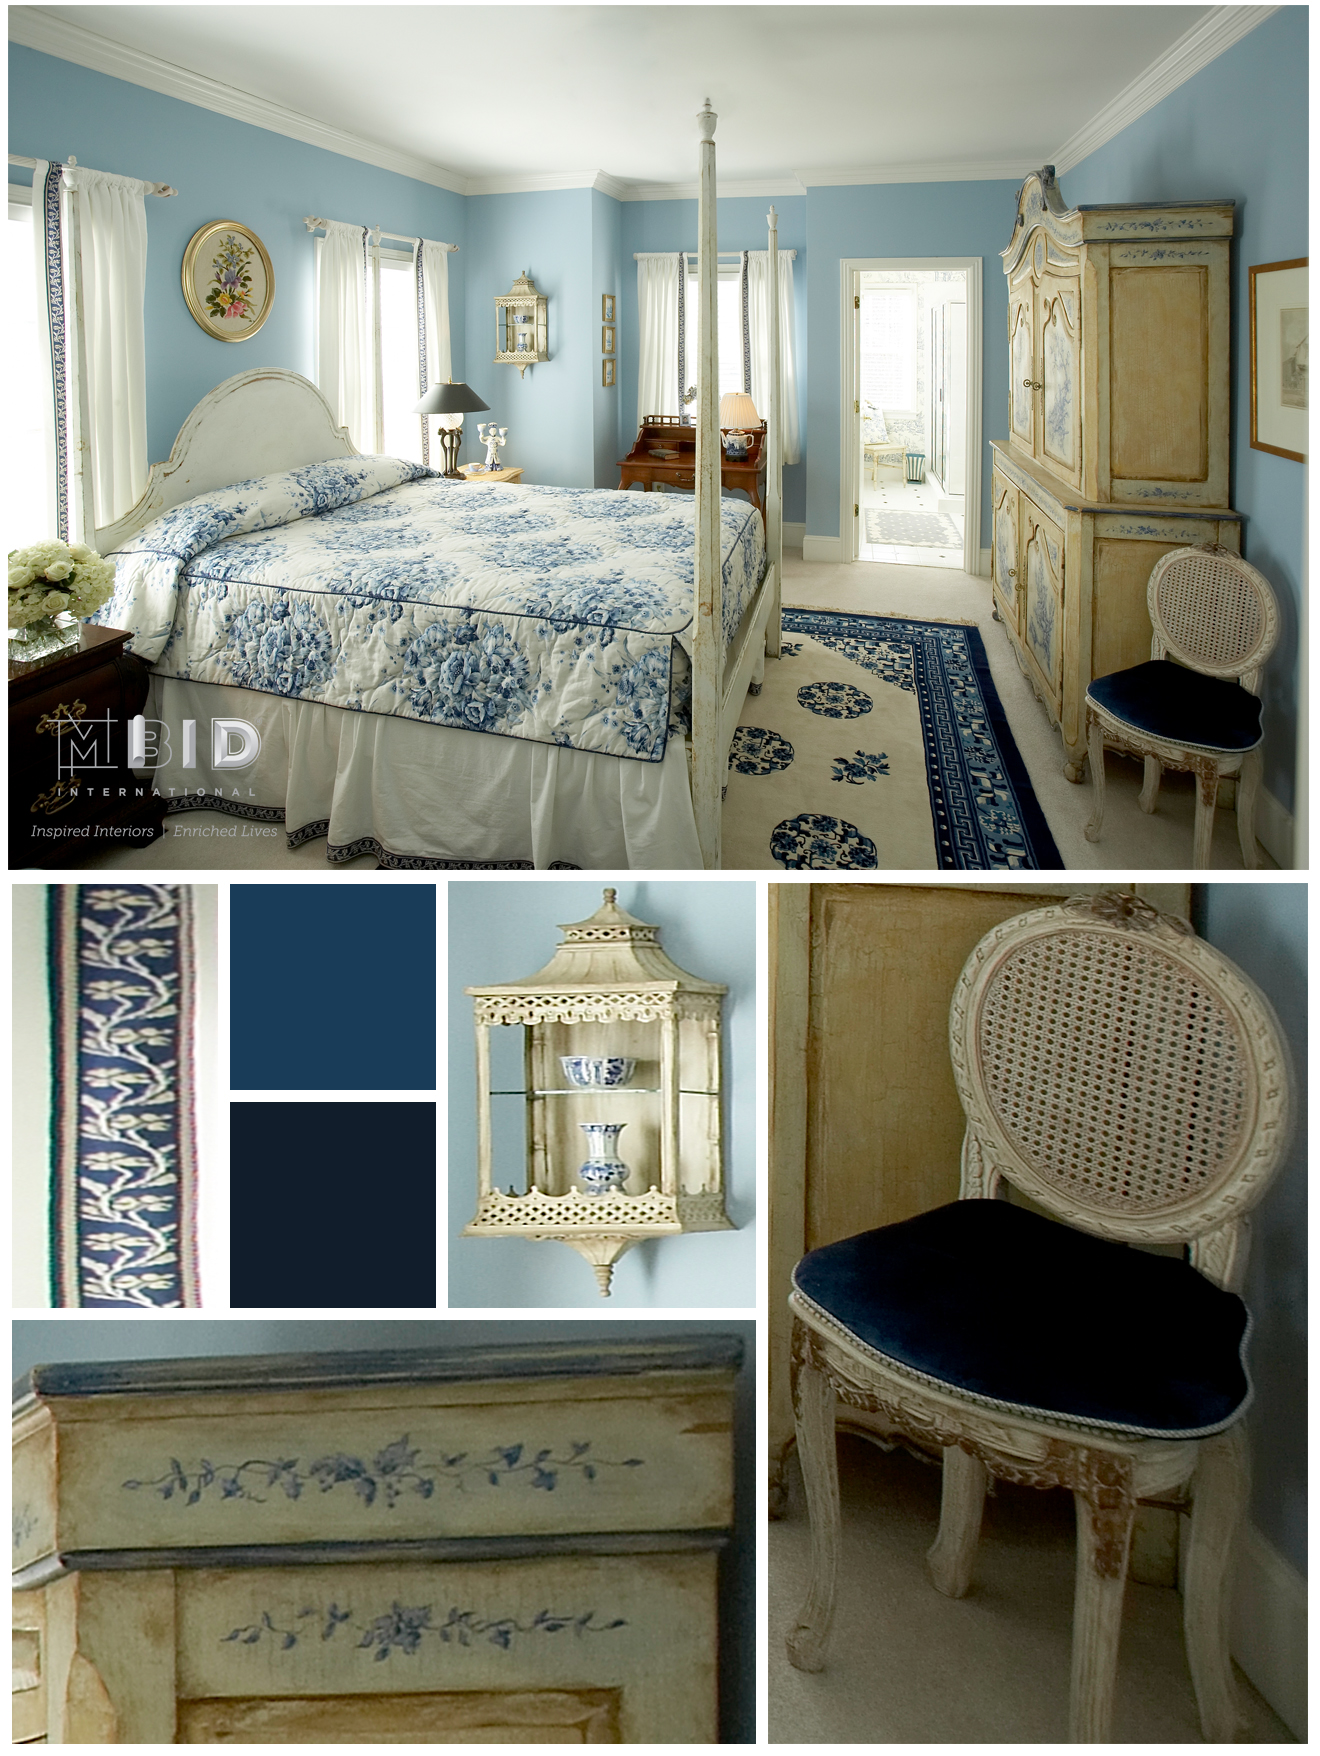 Blue And White Bedroom Interior Design North Carolina Greensboro Mbid International